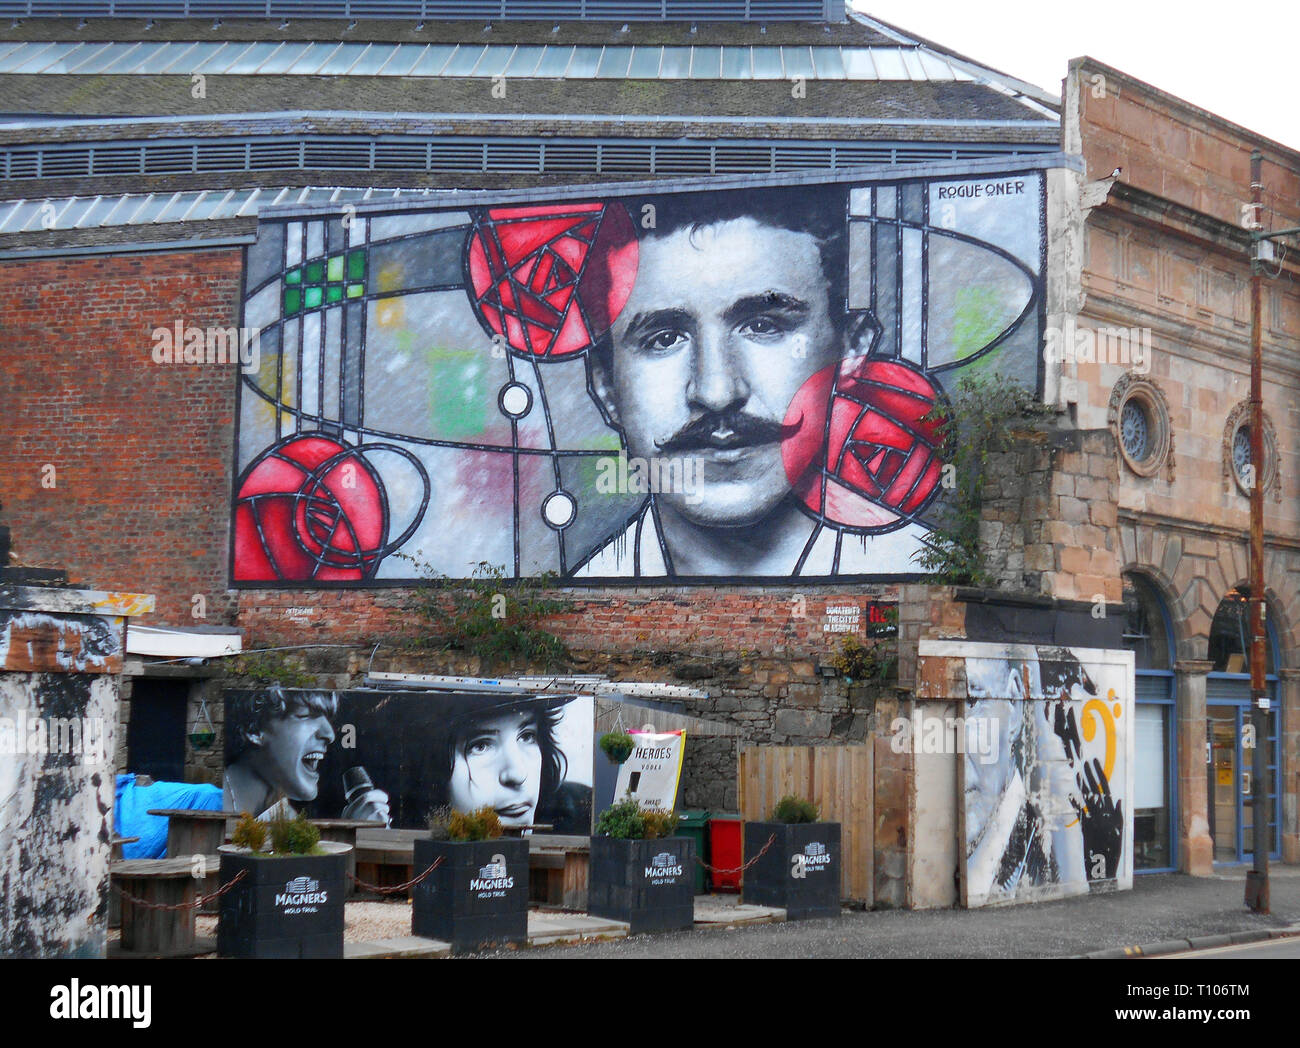 This splendid image is of Charles Rennie Mackintosh, the great Scottish architect and designer, and it is to commemorate 150 years since his birth. The image appeared on the wall behind the Clutha Bar in Glasgow in 2018. Alan Wylie/ALAMY © - Stock Image